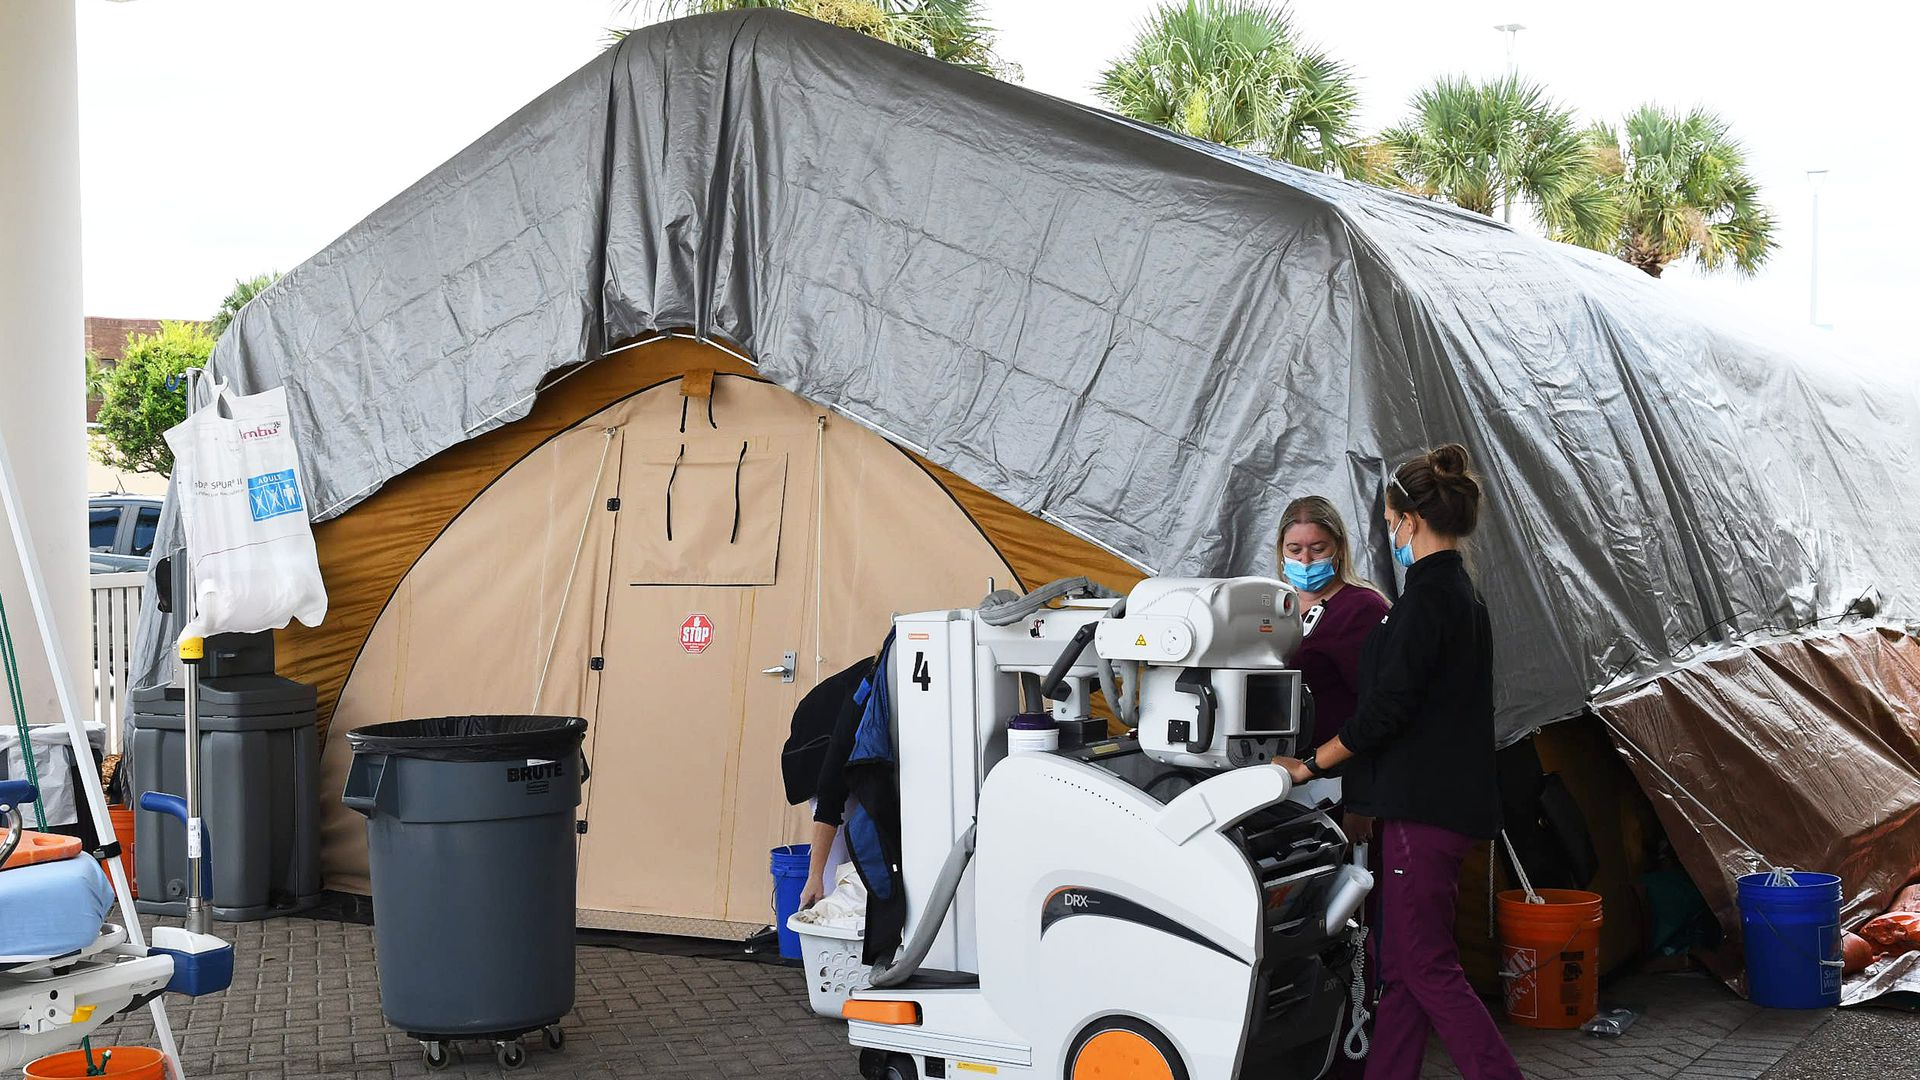 Nurses bring a portable x-ray machine to a treatment tent outside the emergency department at Holmes Regional Medical Center in Melbourne, Fla., July 29